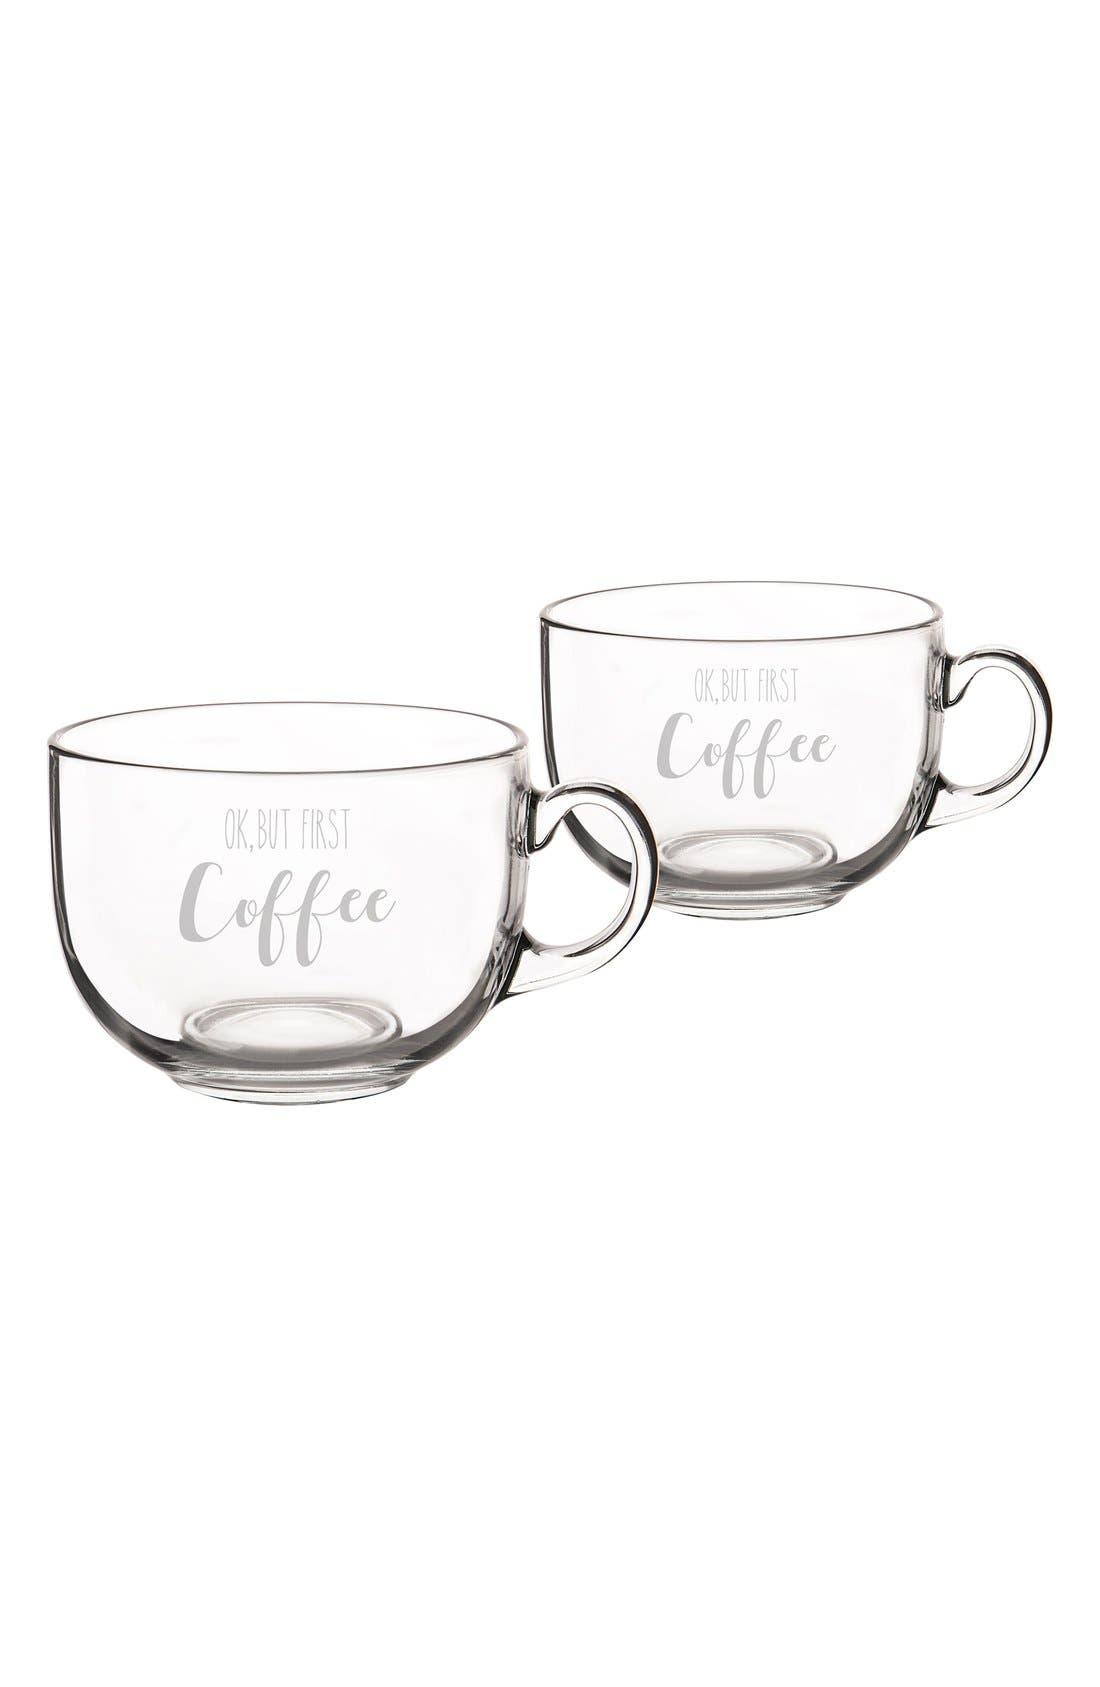 But First Coffee Set of 2 Glass Mugs,                             Alternate thumbnail 2, color,                             100